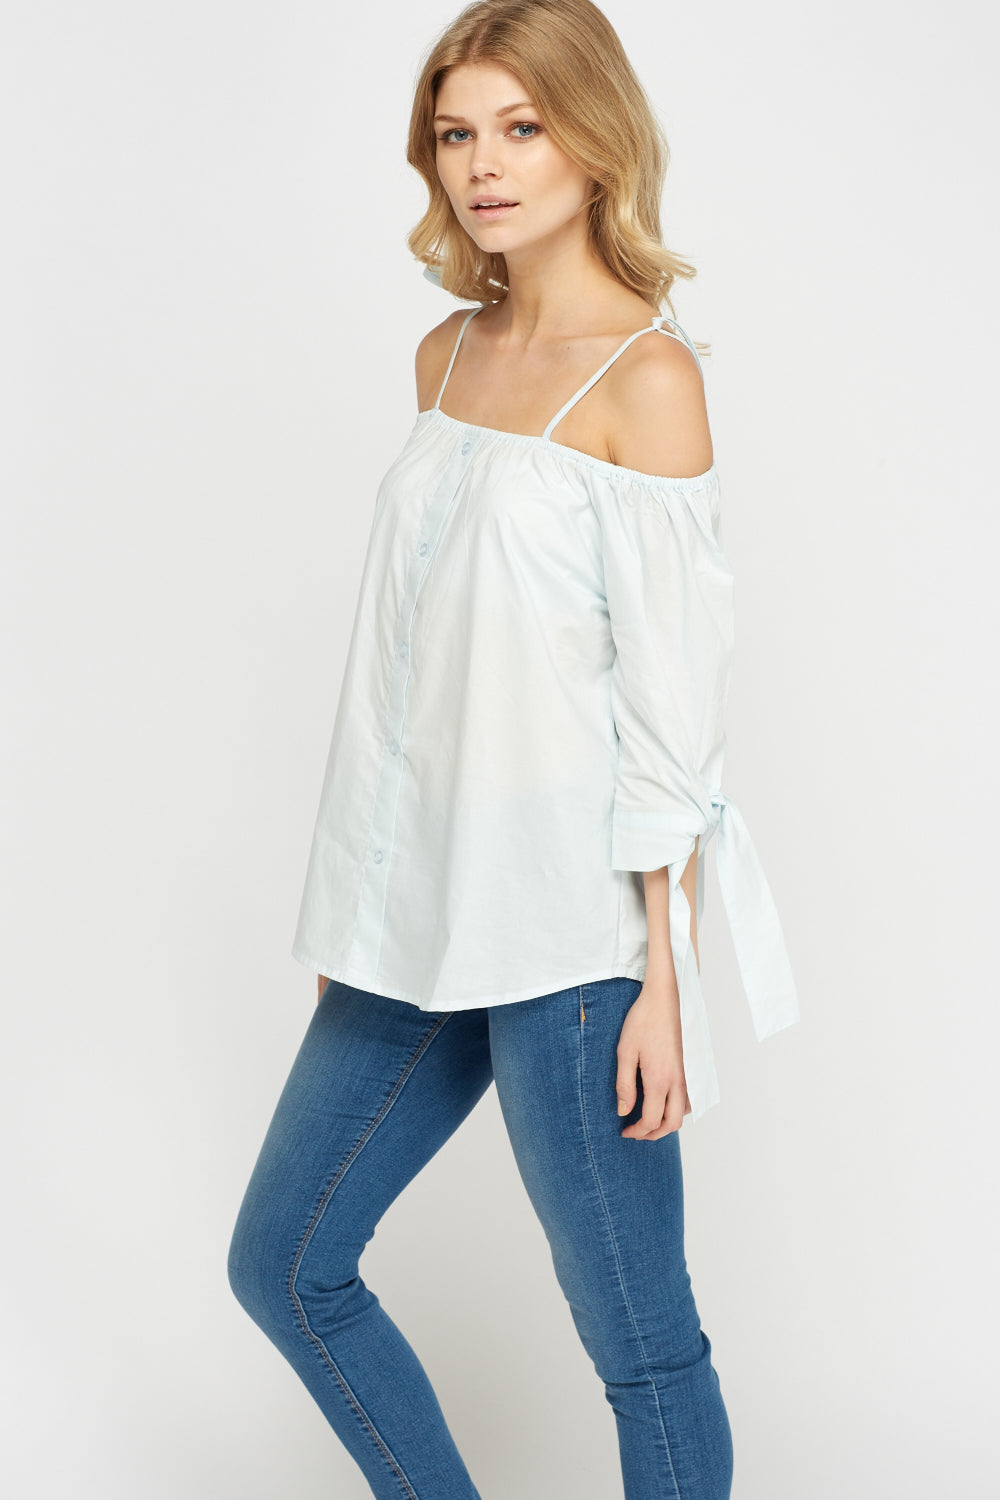 Top camisero off shoulder - MiTiendaSecreta